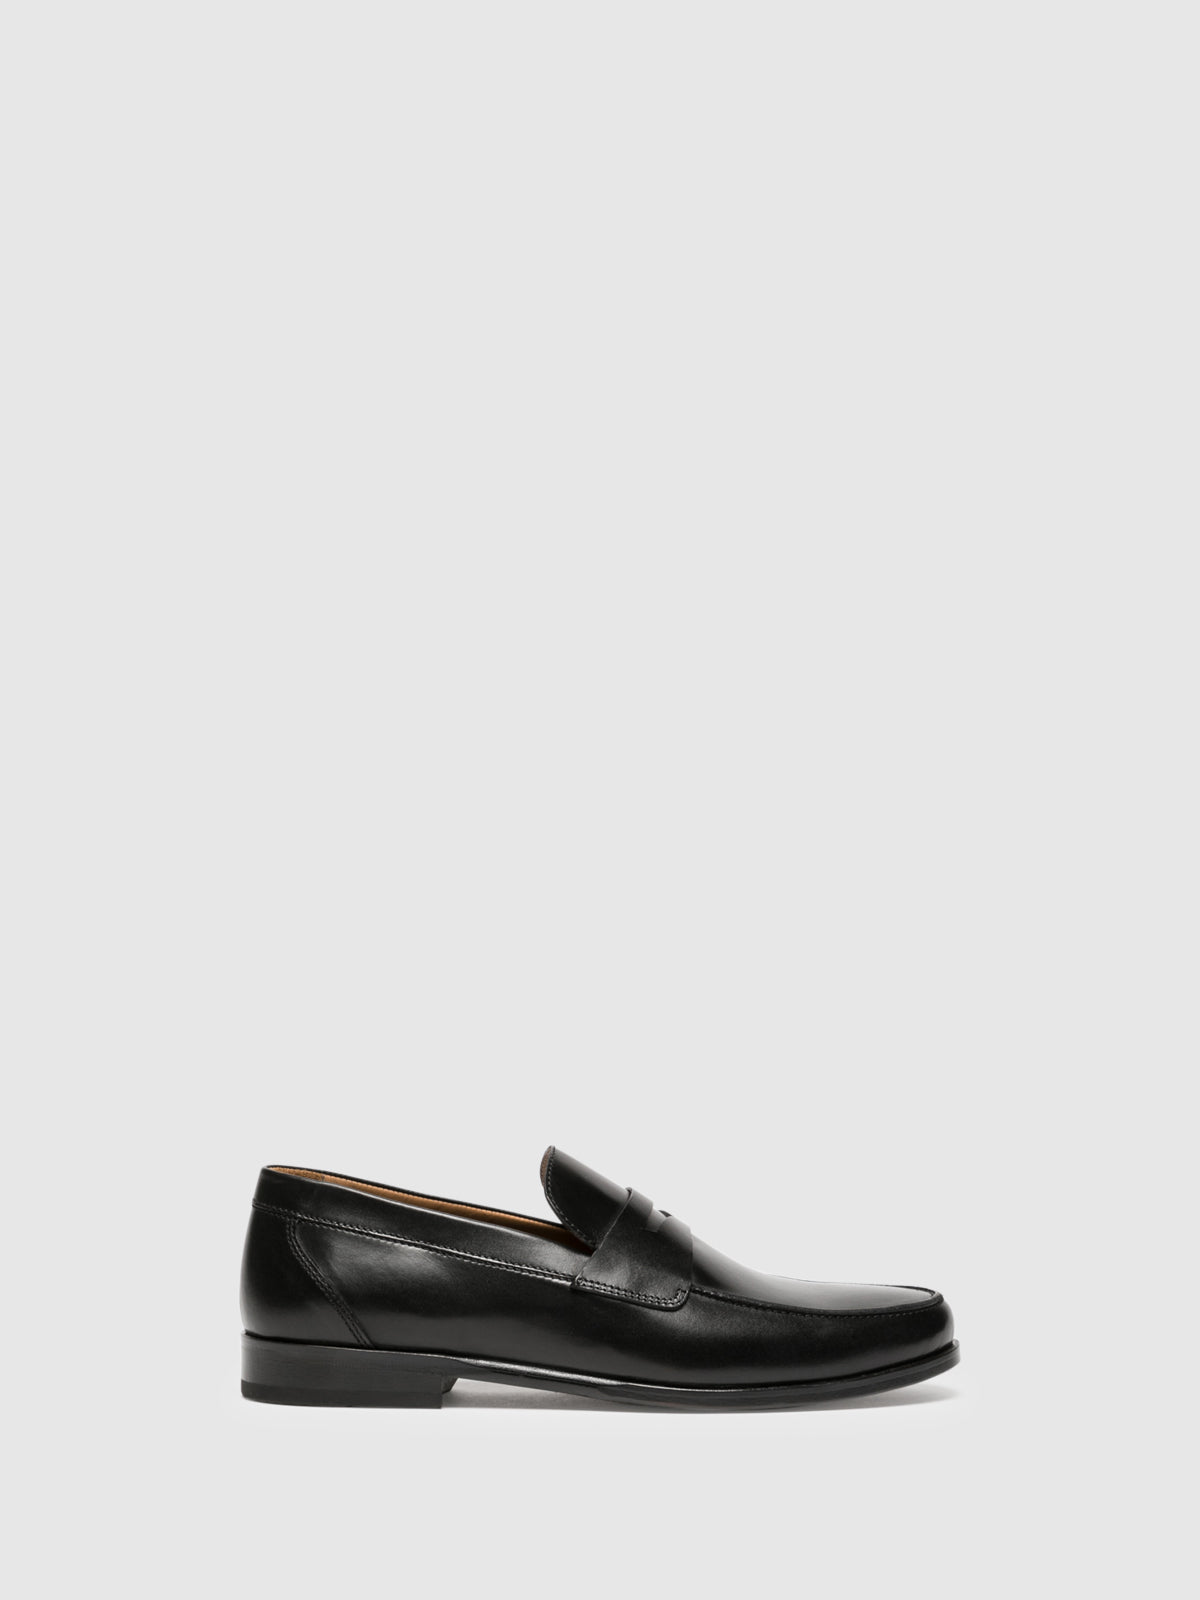 Yucca Loafers in Schwarz